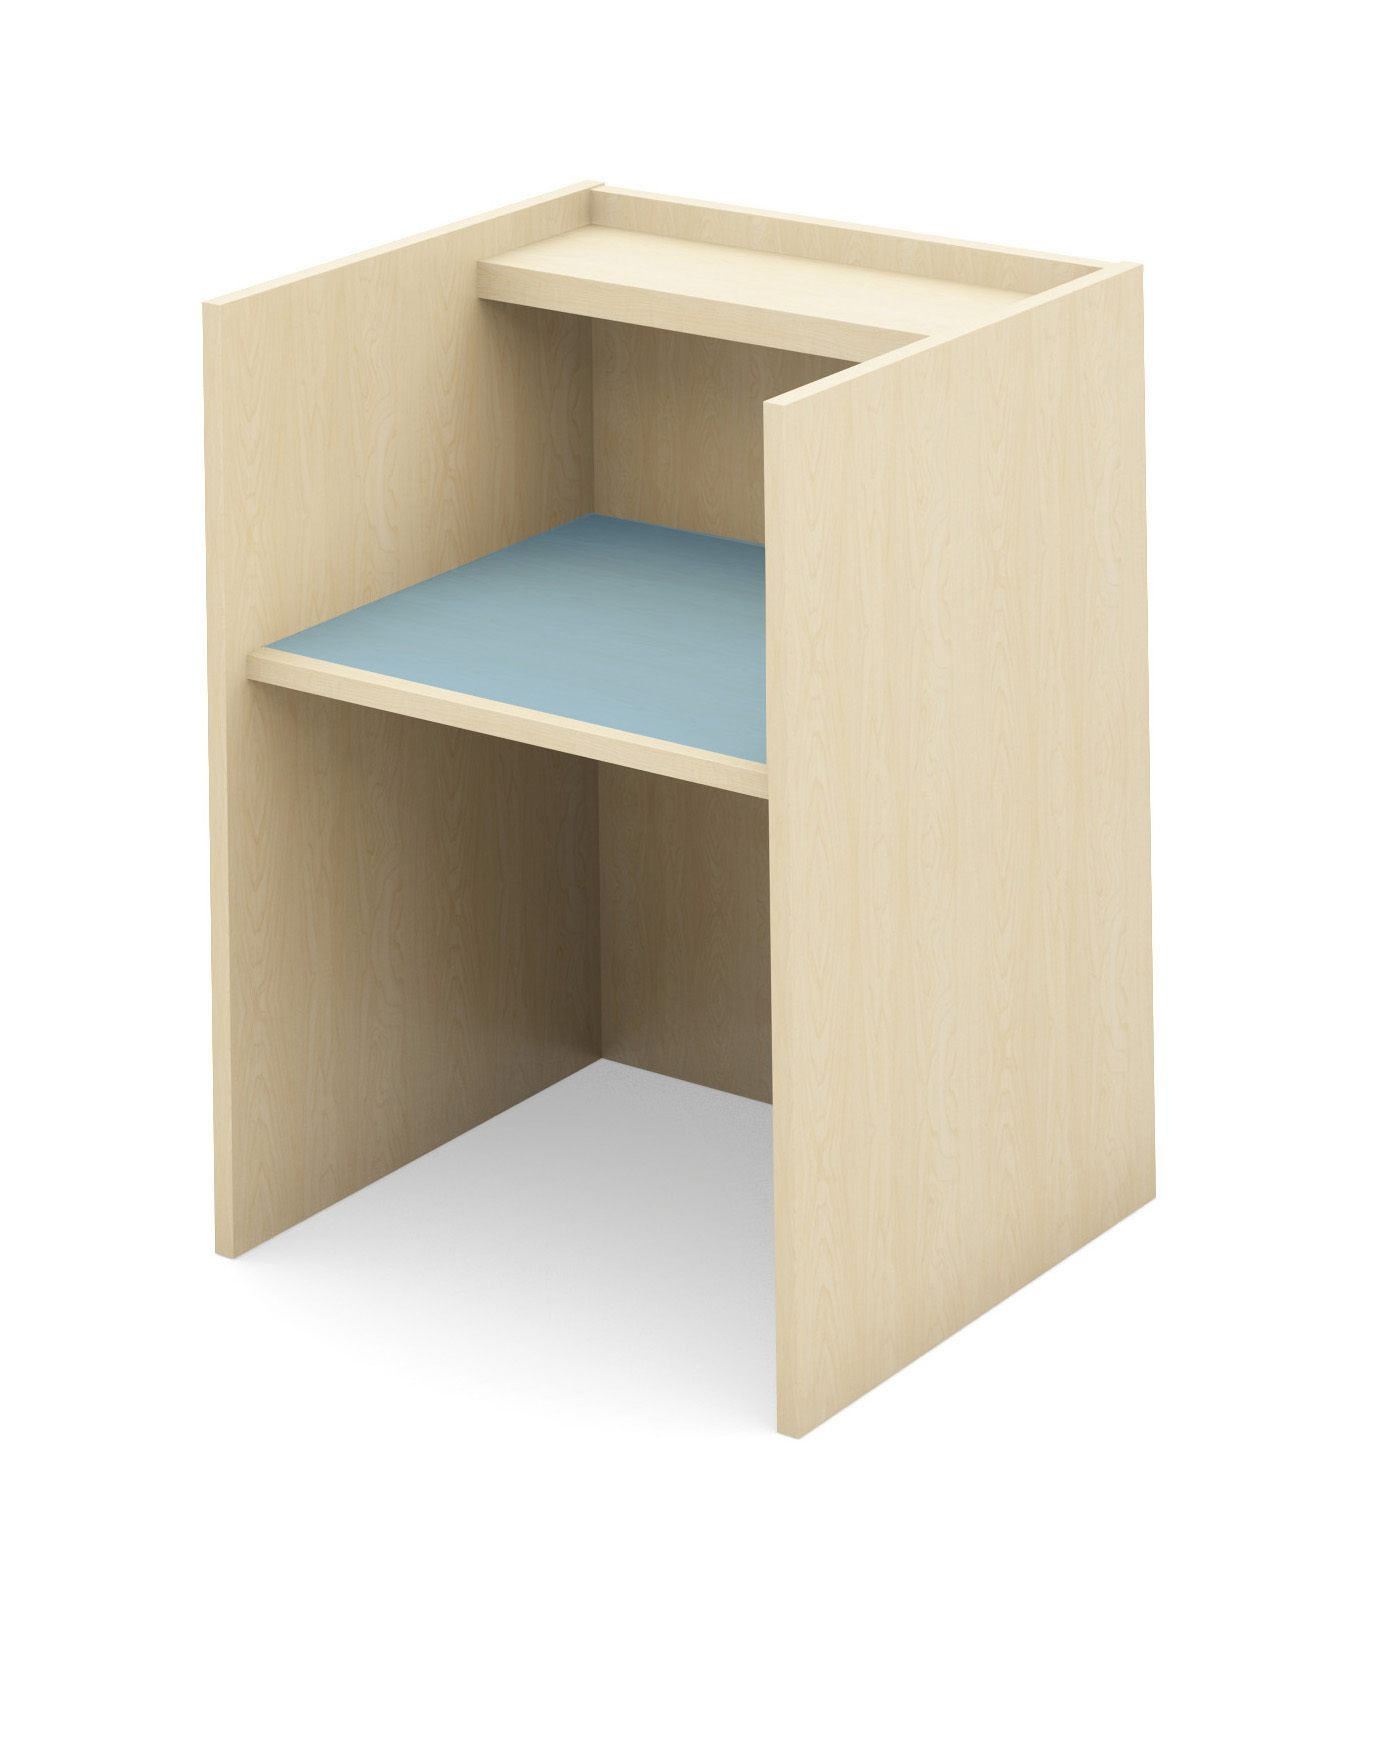 Lit Bébé Cora Luxe Basic Carrel 1 Lam top – Abdfurniture